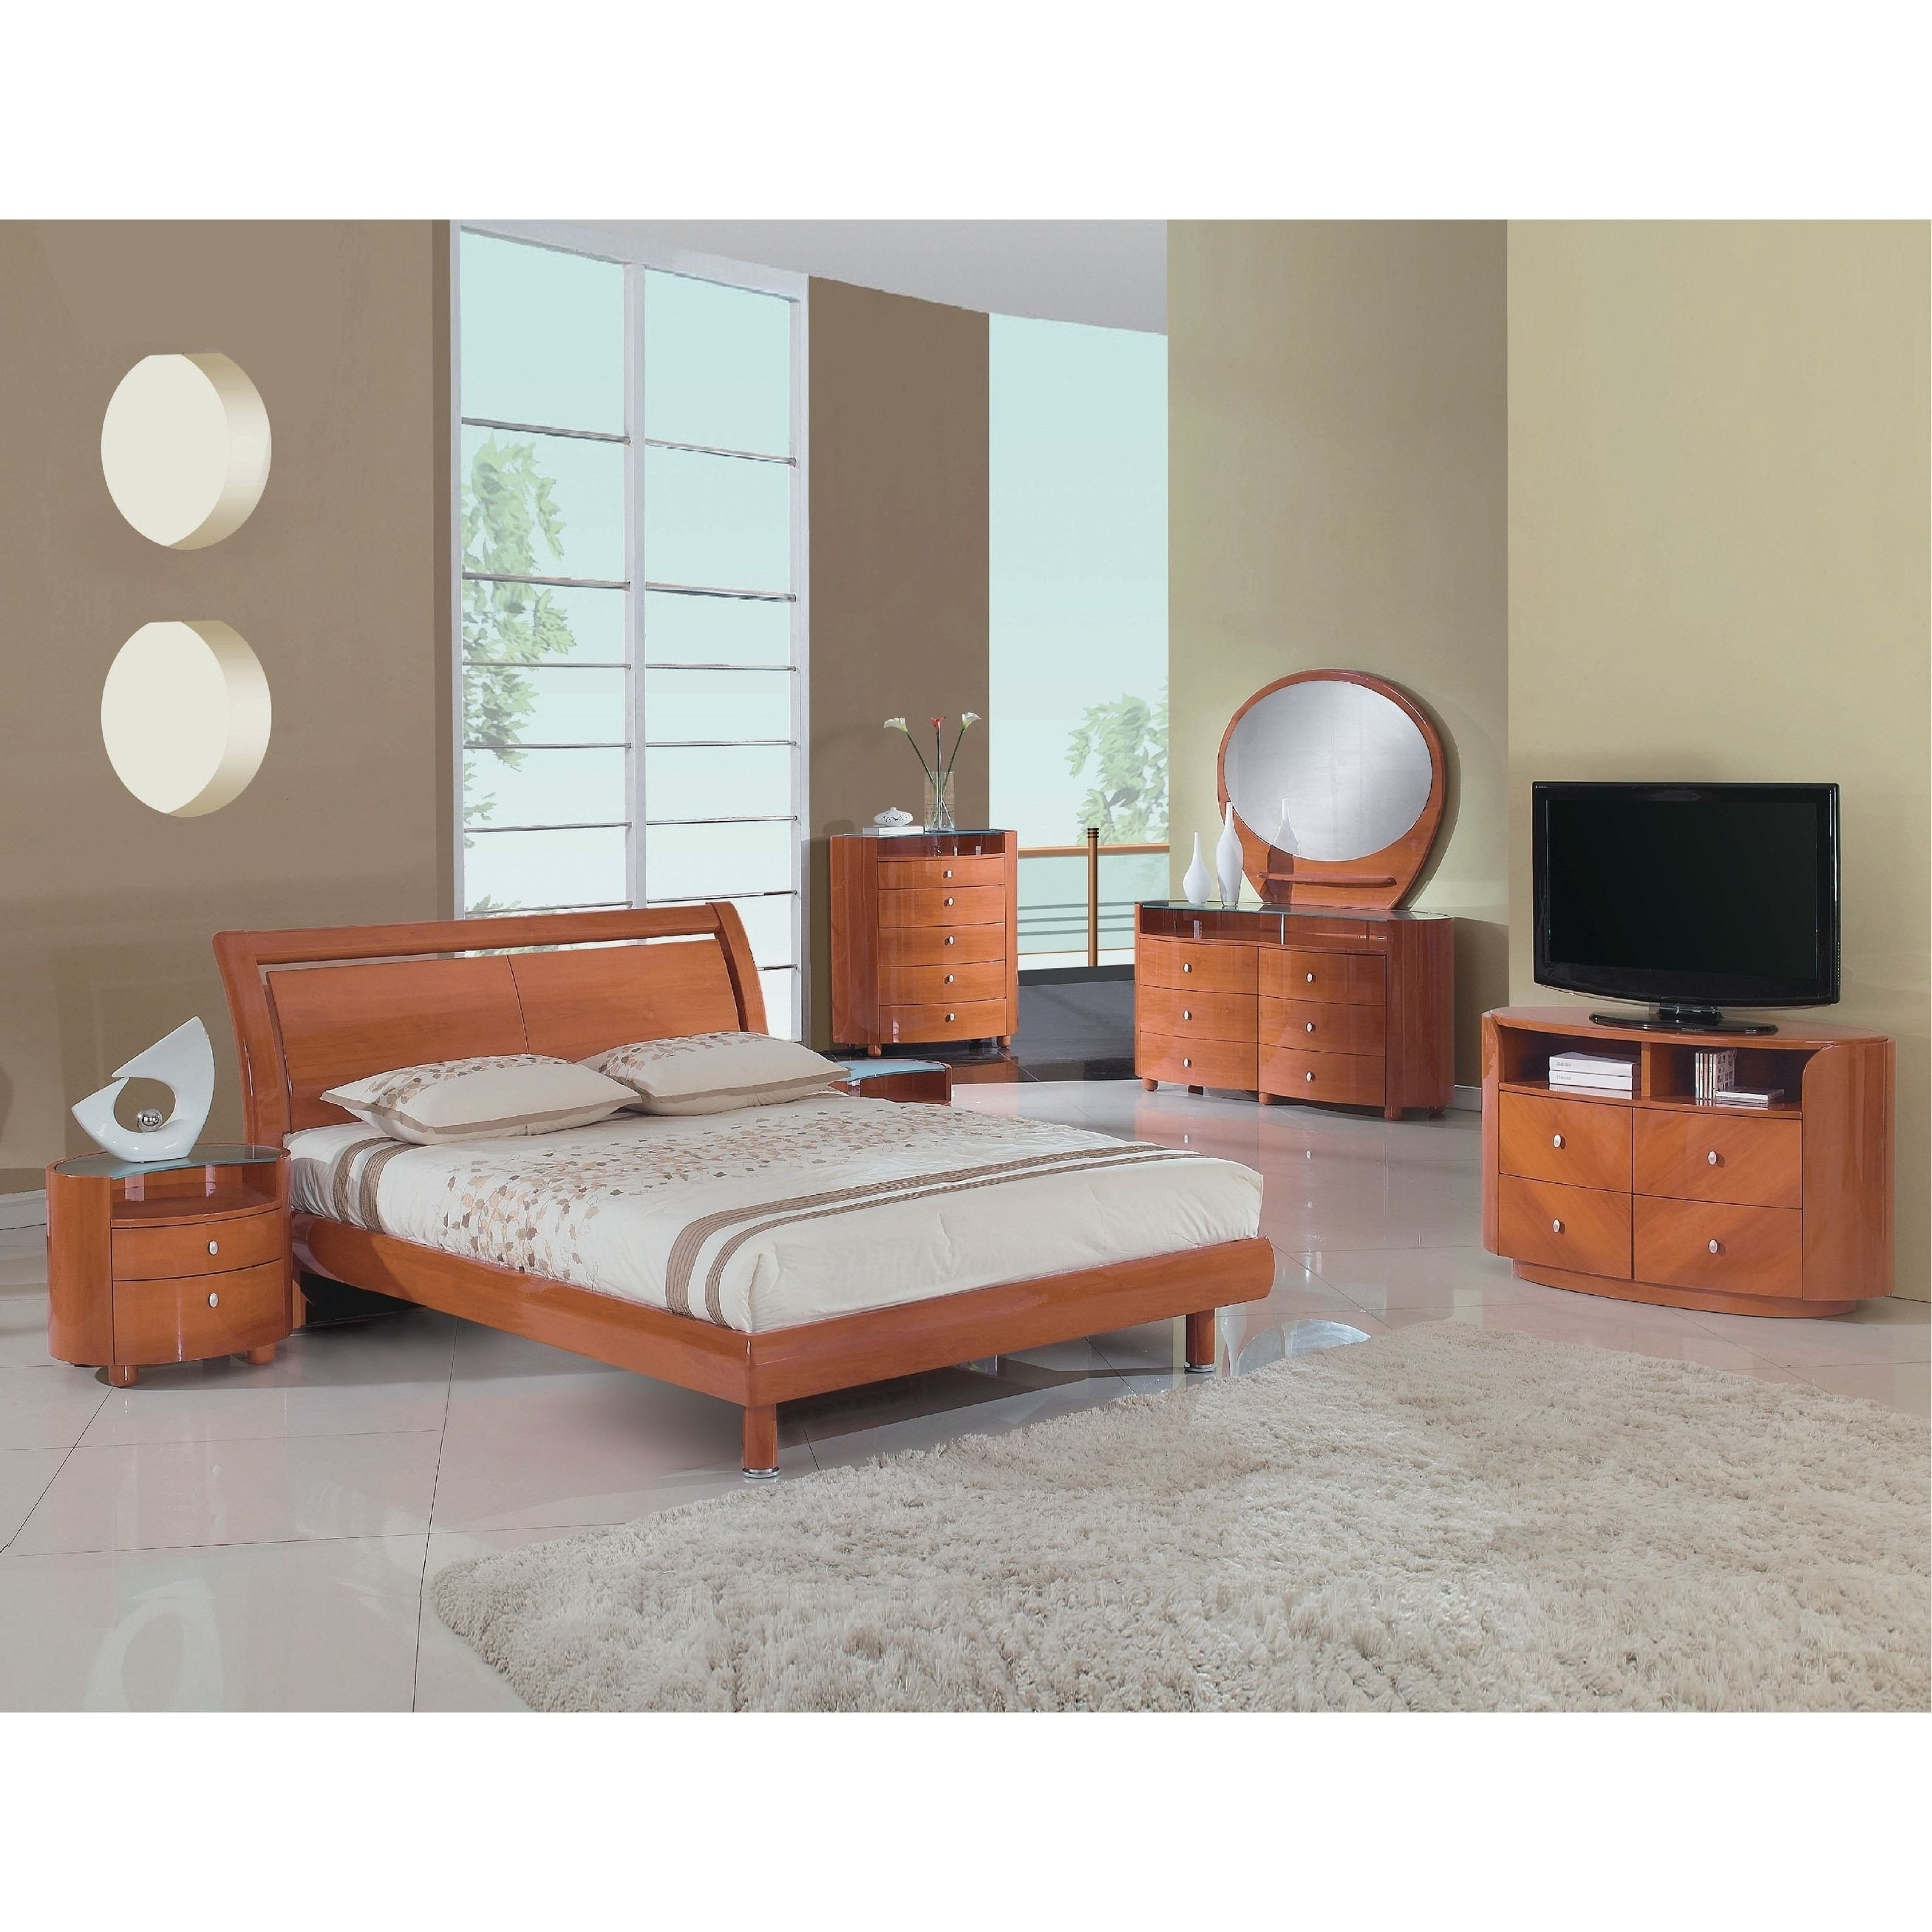 Wall Unit Bedroom Set Inspirational Line Shopping Bedding Furniture Electronics Jewelry